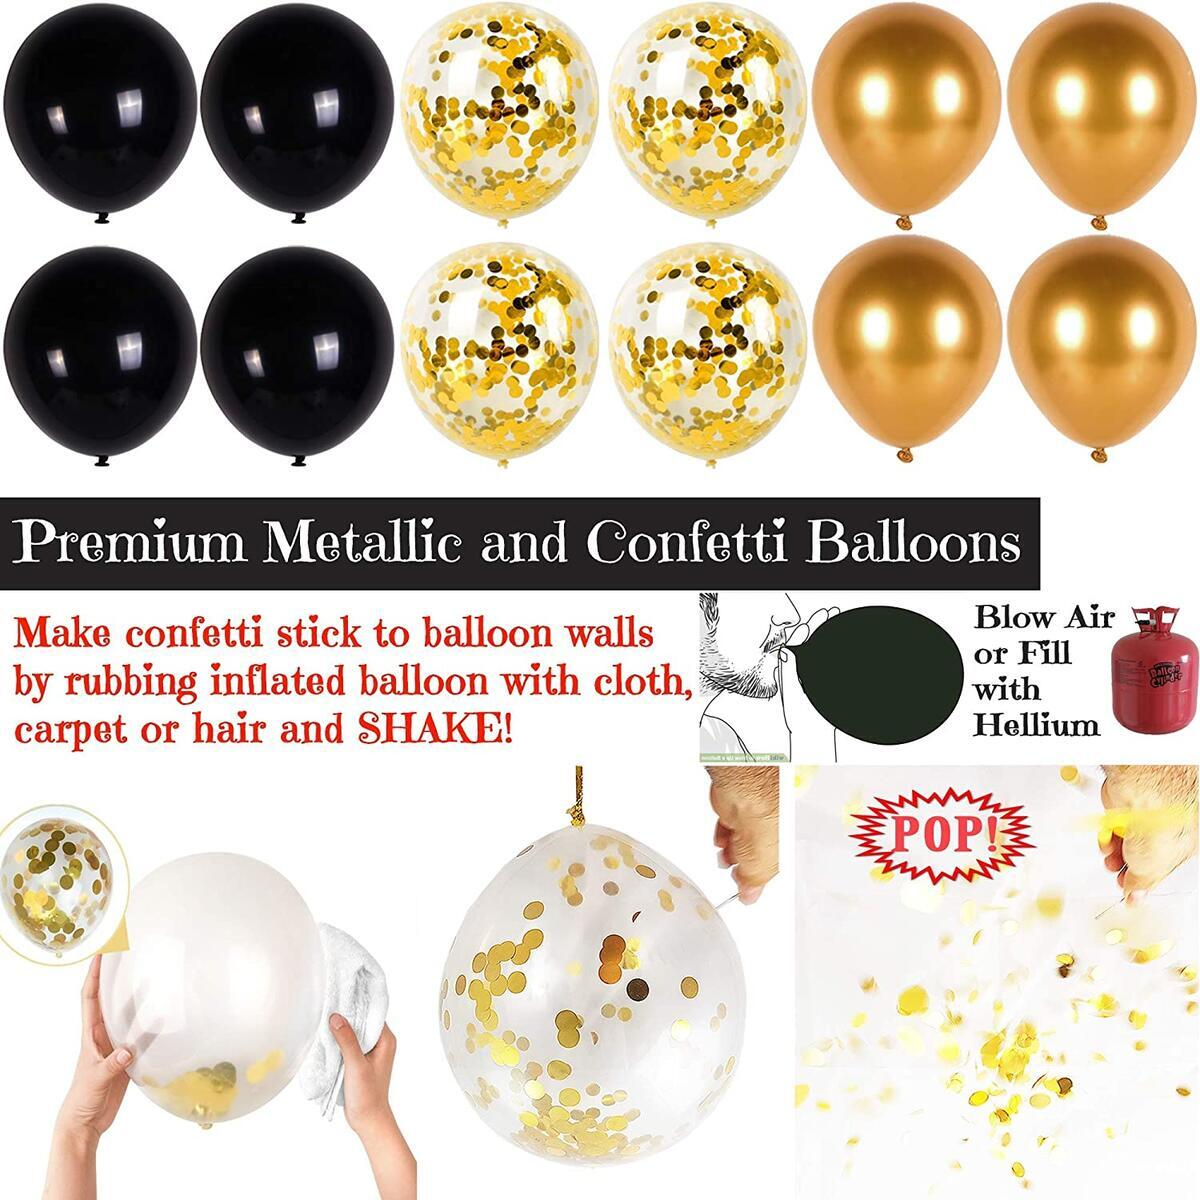 50th Birthday Party Decorations Mega Set - Gold Cheers to 50 Years Black Banner, Pom Poms, 12 Pcs Elegant Hanging Swirls for 50th Birthday Decor - 50 Years Old Milestone Supplies